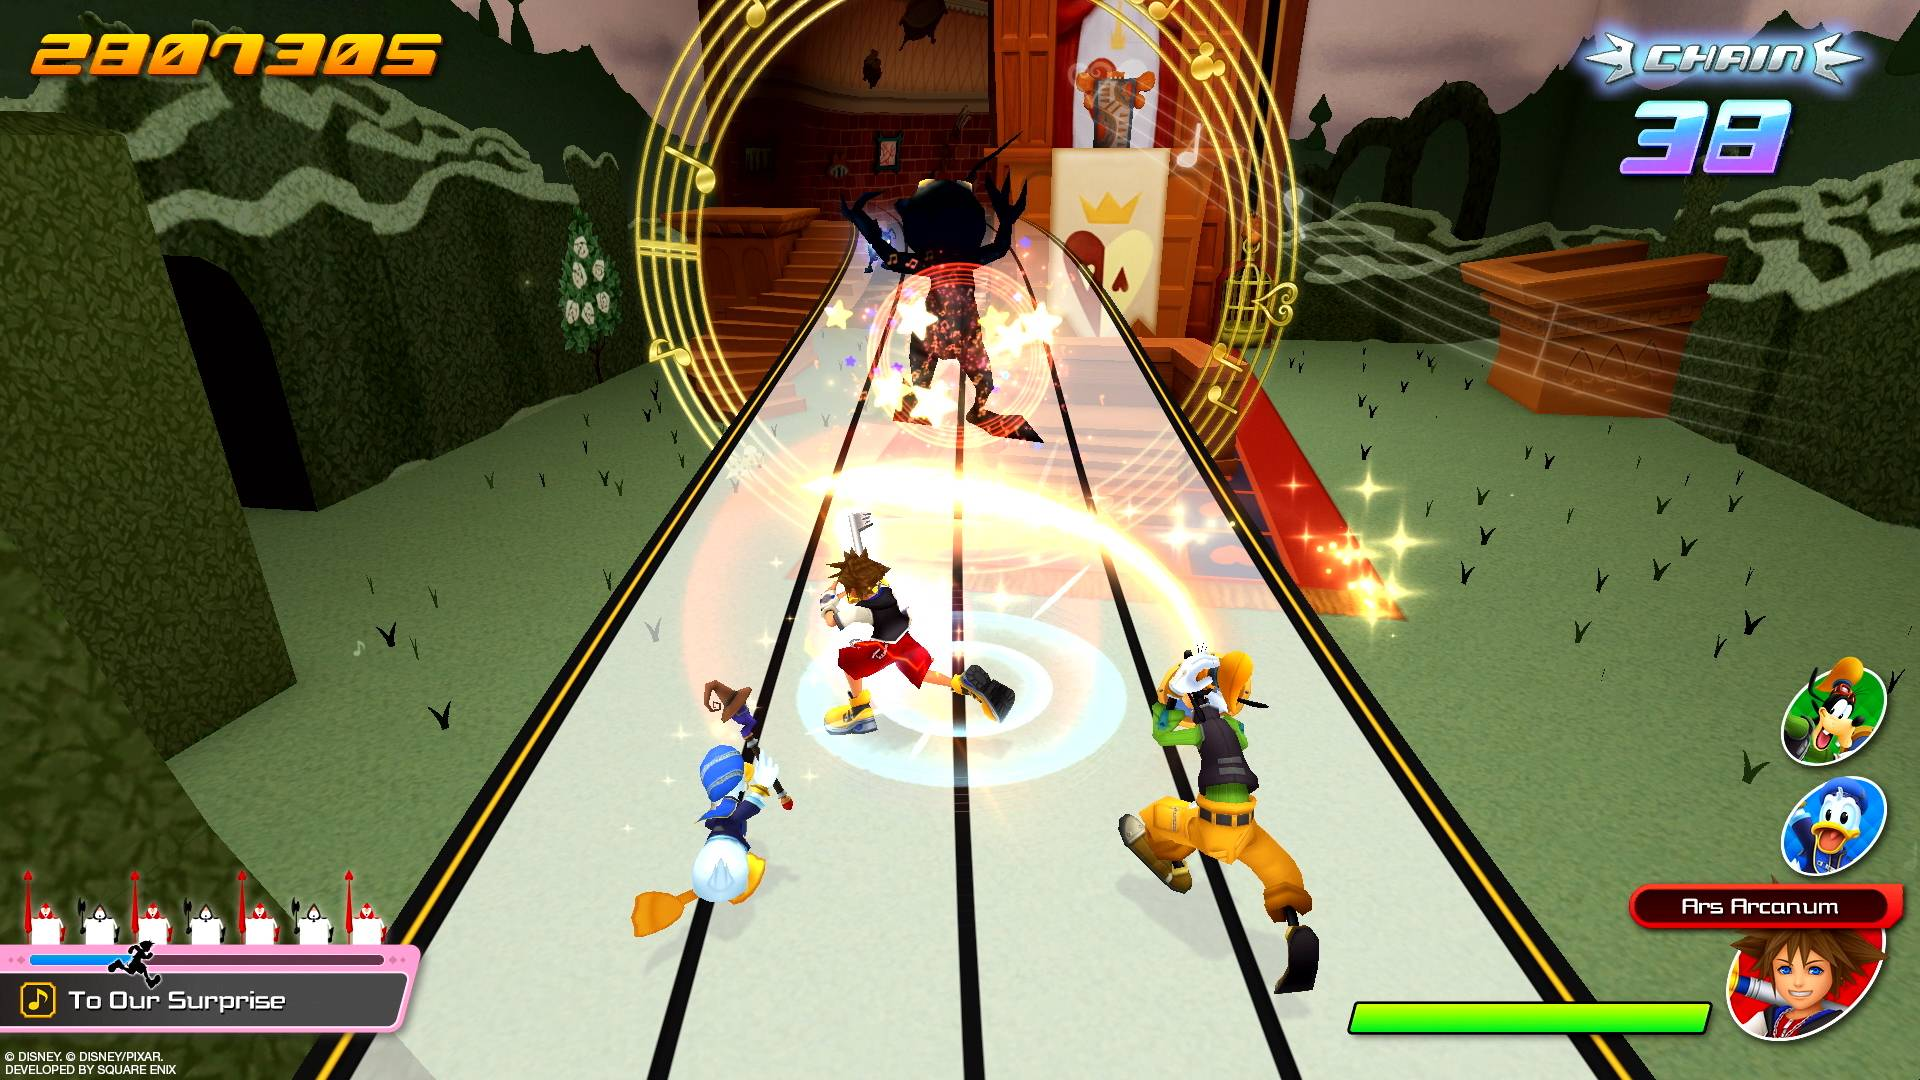 A screenshot from the new Kingdom Hearts: Melody of Memory game   © DISNEY. © DISNEY / PIXAR. DEVELOPED BY SQUARE ENIX